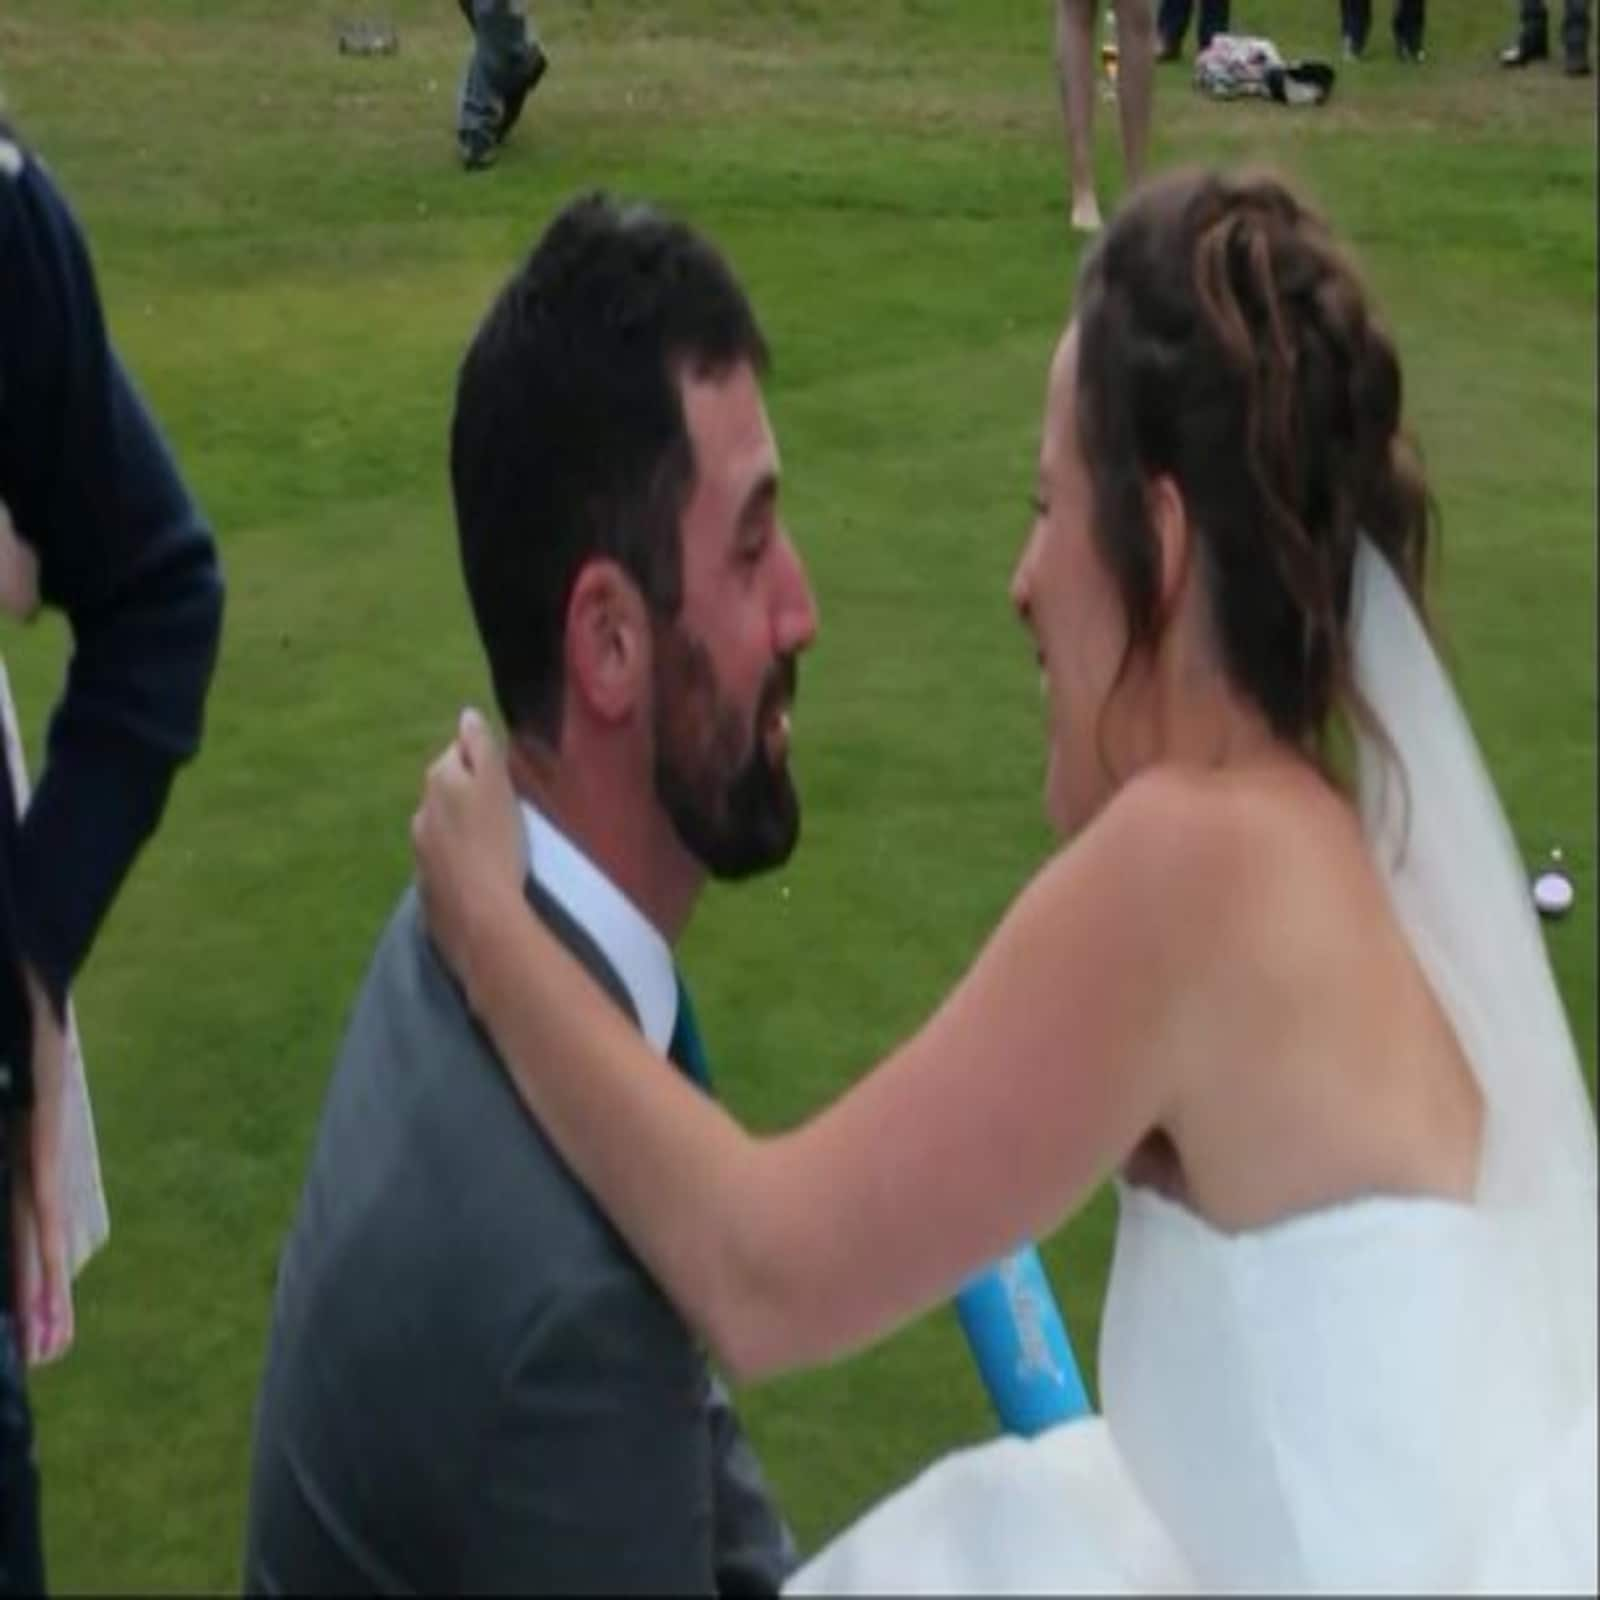 groom hit by balls on private part